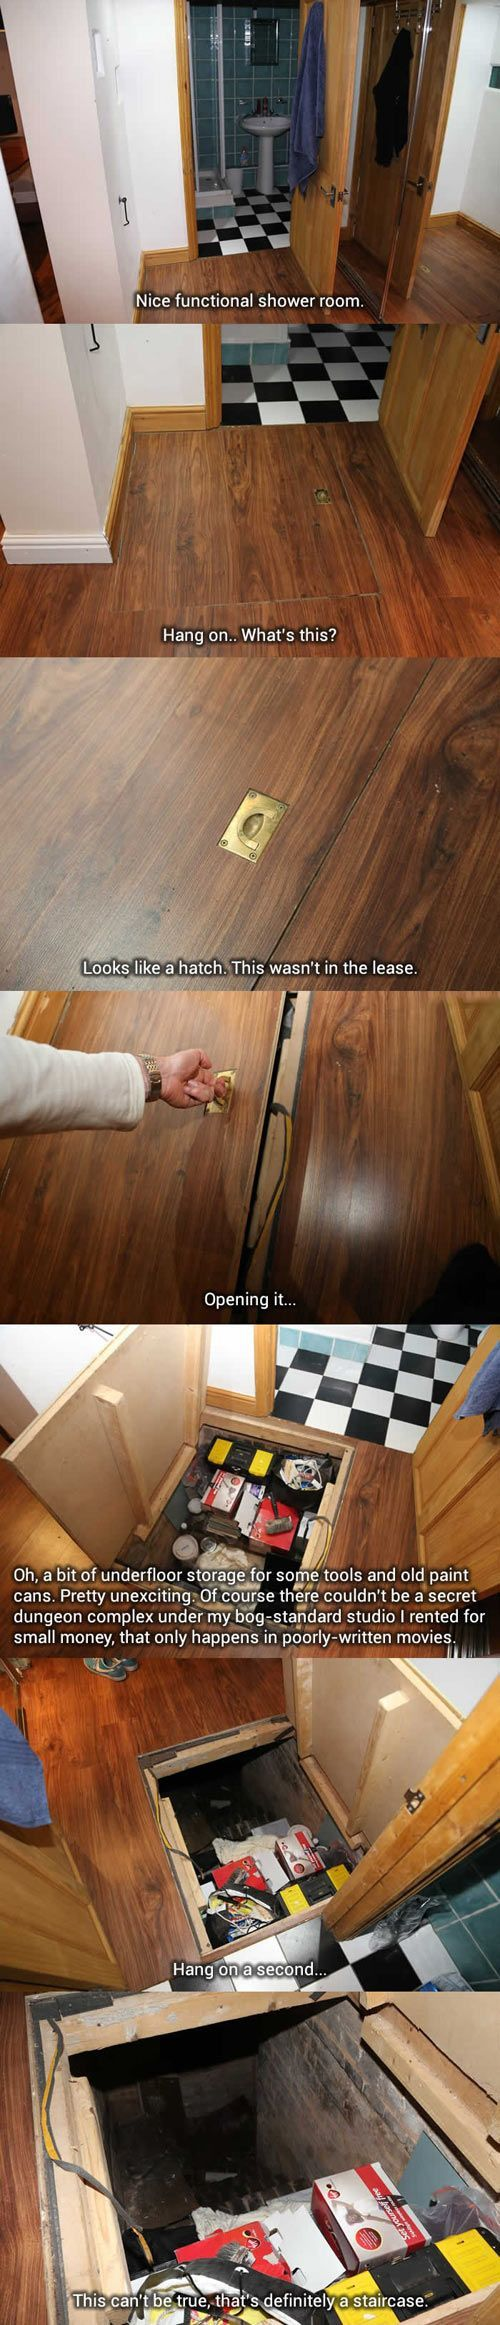 freaking awesome apartment if u click on the picture there is more. It will tell u the whole story http://ibeebz.com